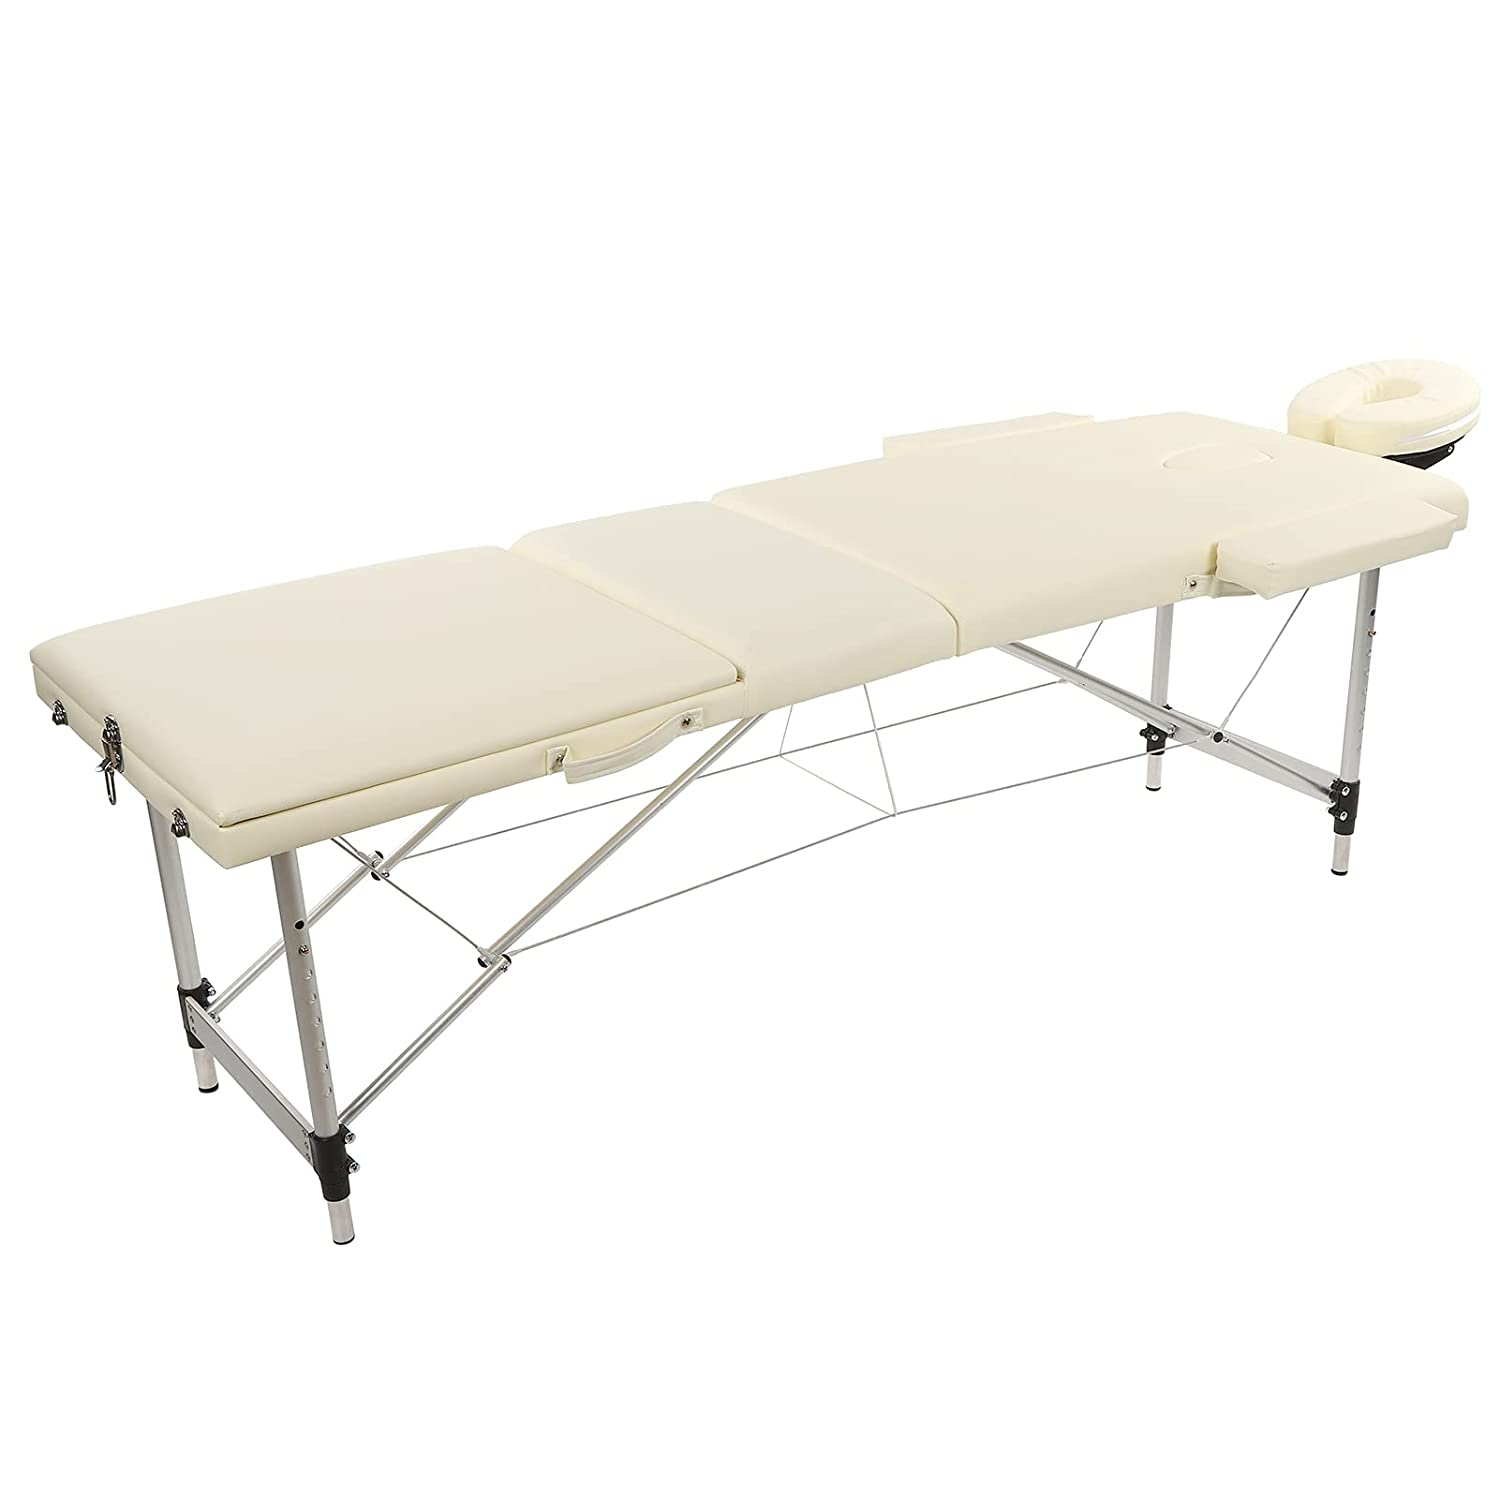 Spa Bed Support the Head and Beauty Neck Manufacturer regenerated product for Massage Classic Salon